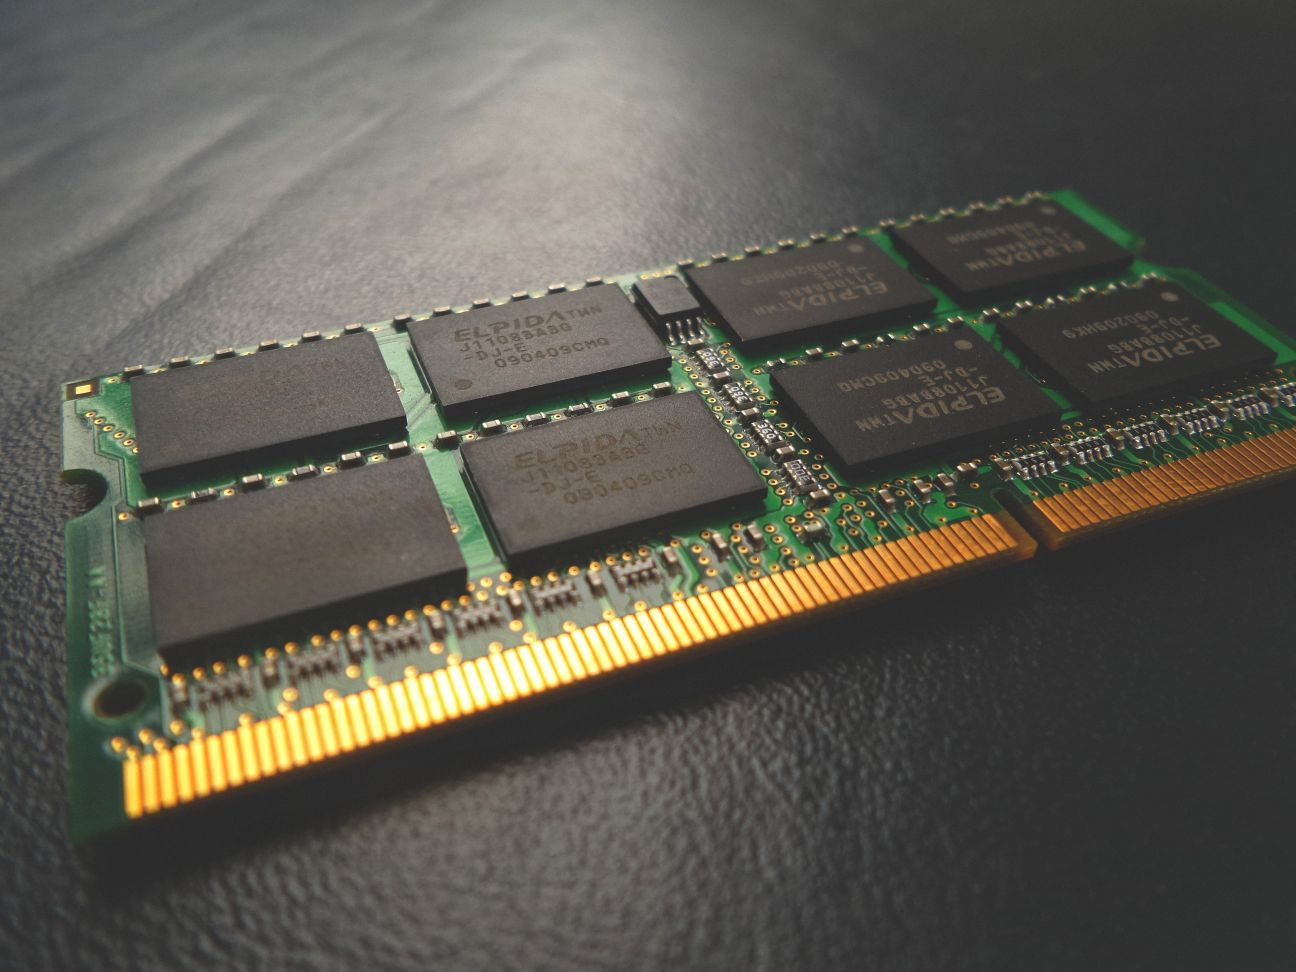 RAM is used for temporary storage of data